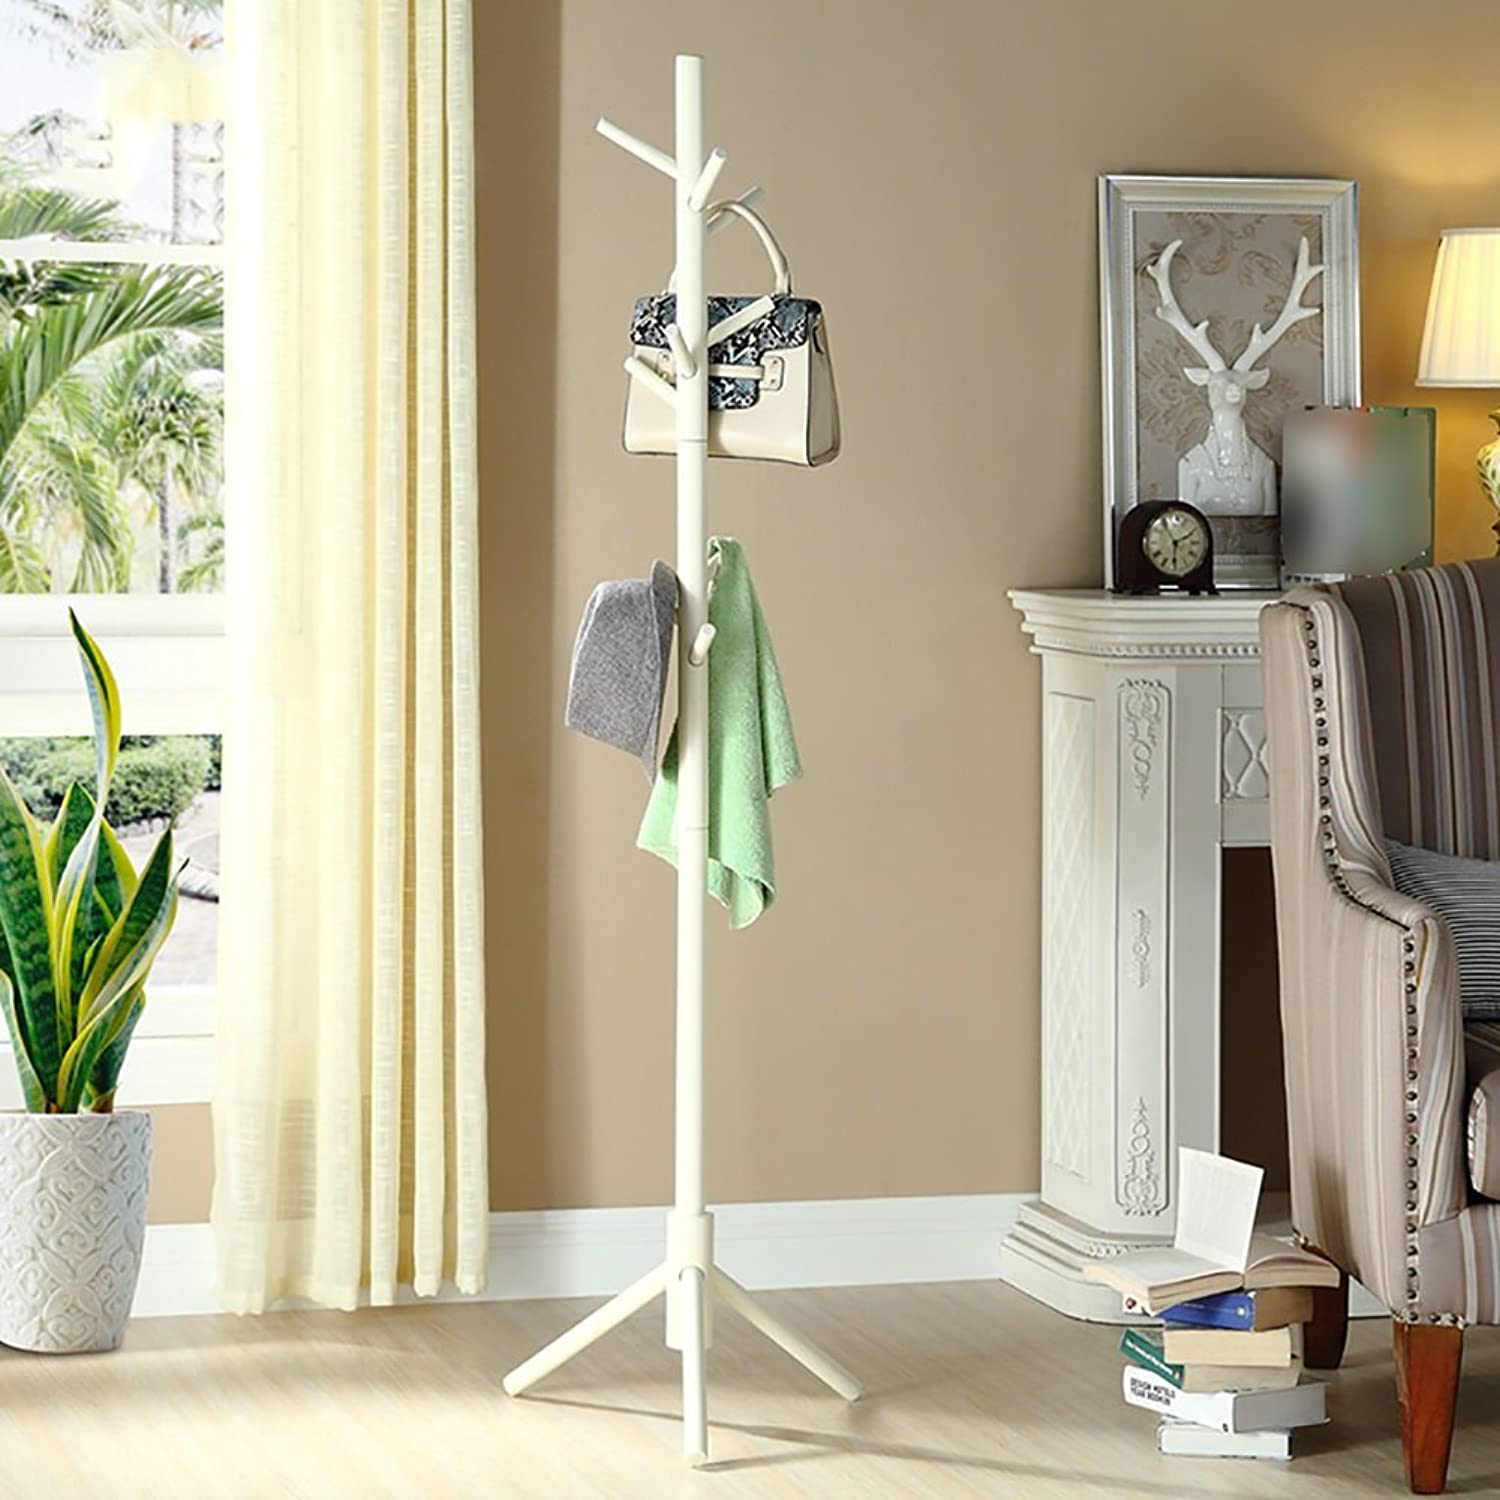 LFF- All Solid Wood Hangers Simple Modern Household Single-Pole Clothes Rack 42×42×168.5cm Bedroom Floor Hanger (color   White)